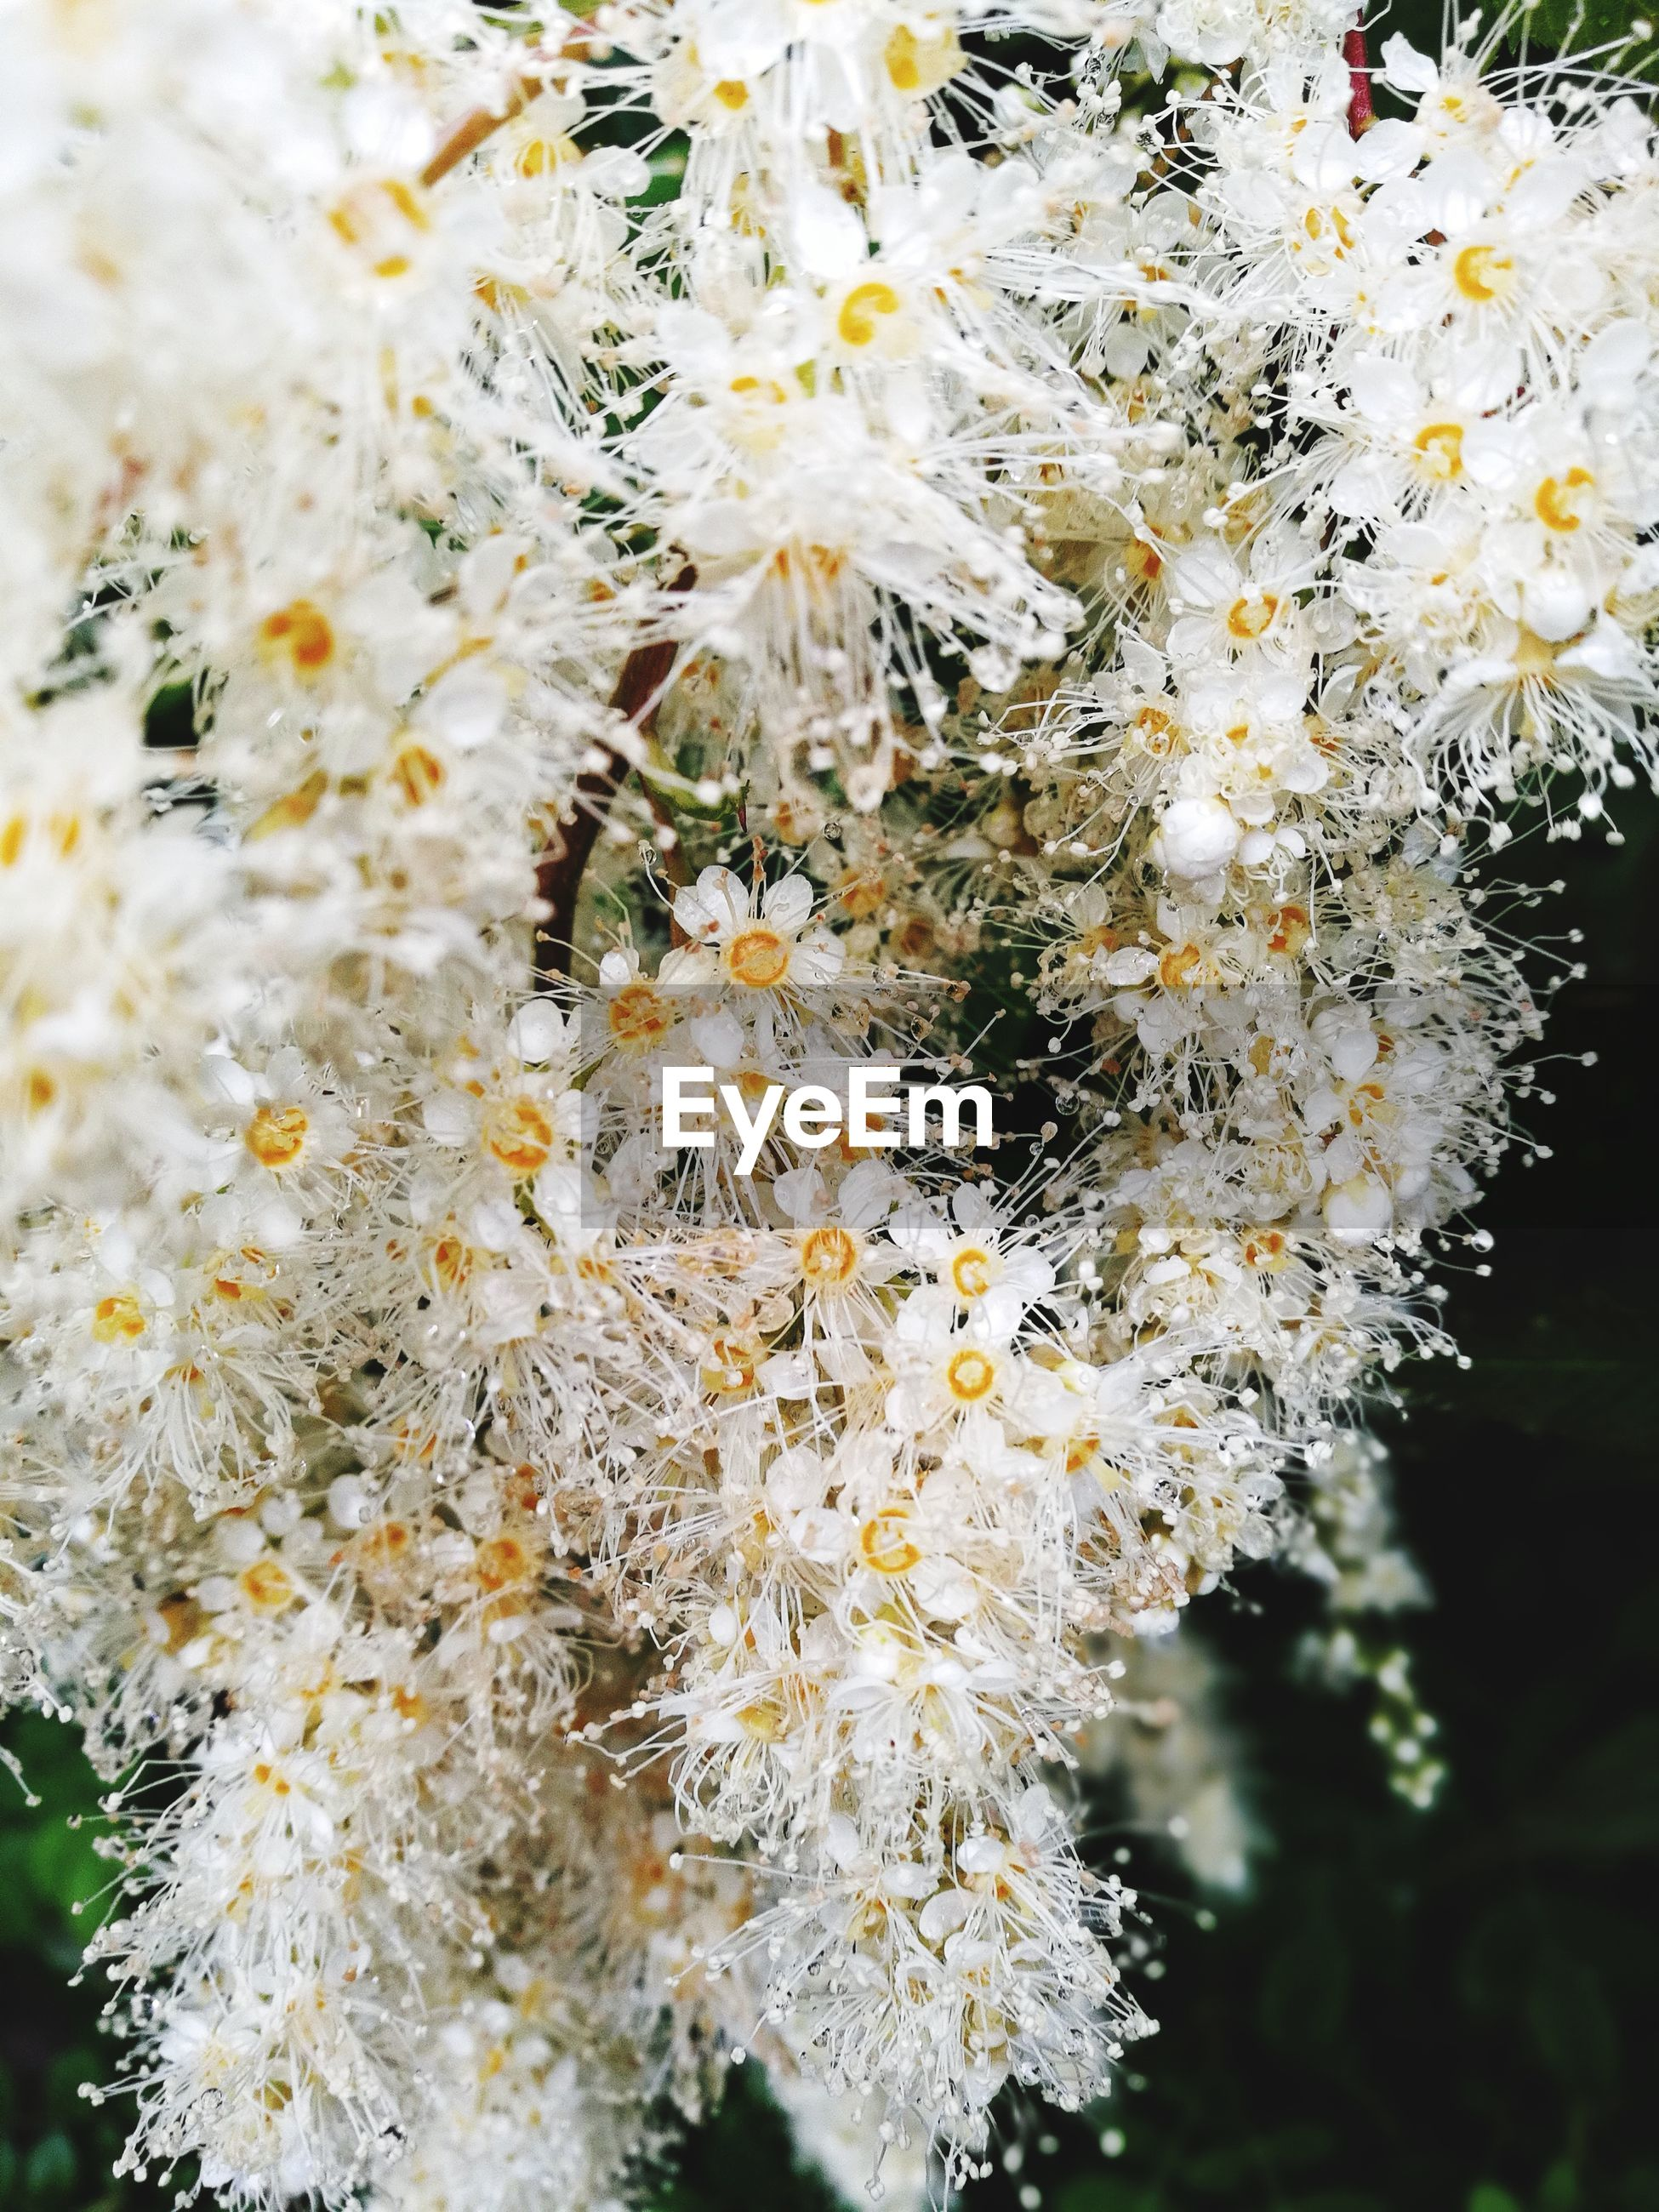 flower, white color, fragility, growth, nature, blossom, white, beauty in nature, botany, freshness, springtime, tree, close-up, no people, outdoors, day, branch, flower head